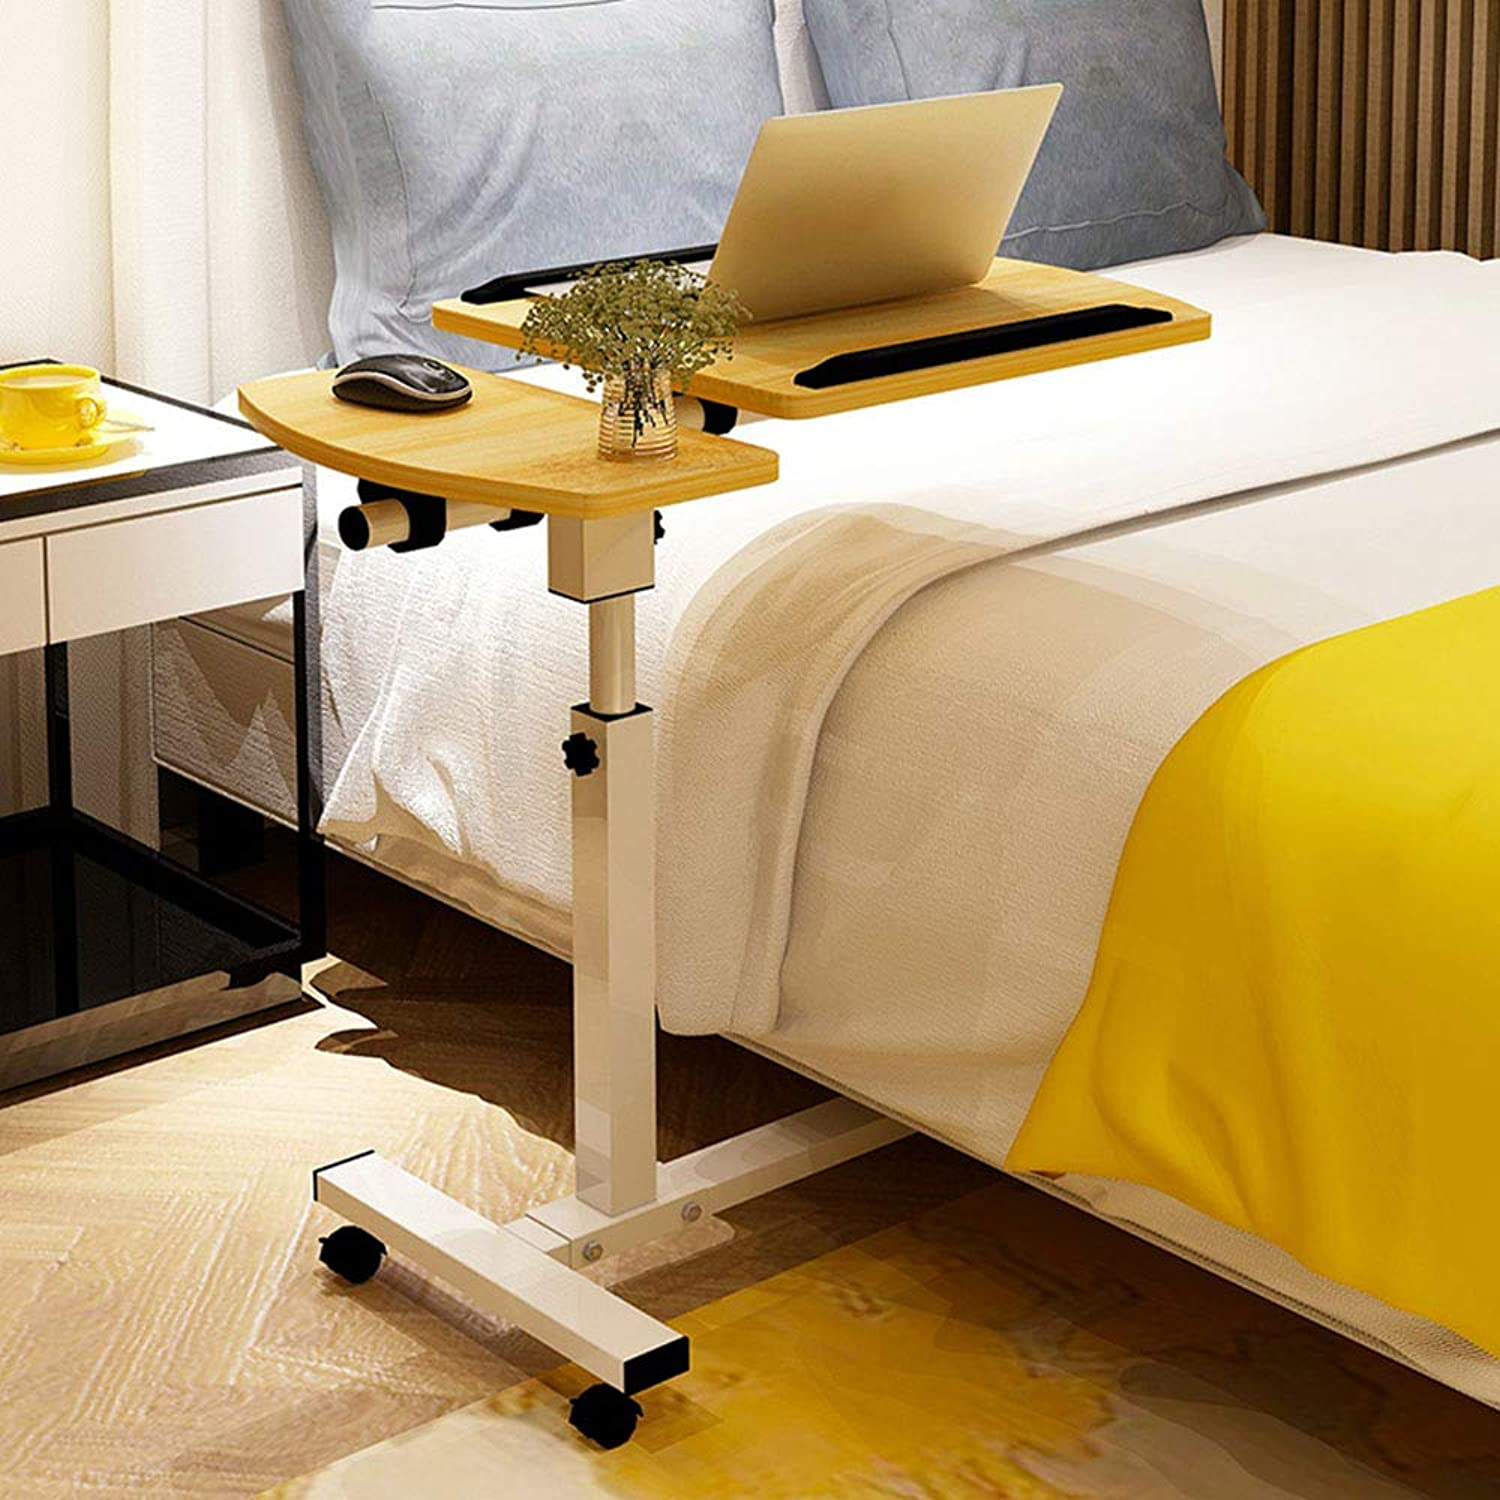 LVZAIXI Computer Desk Bed Learning with Household Lifting Foldable Moving Bedside Table Simple (color   C)